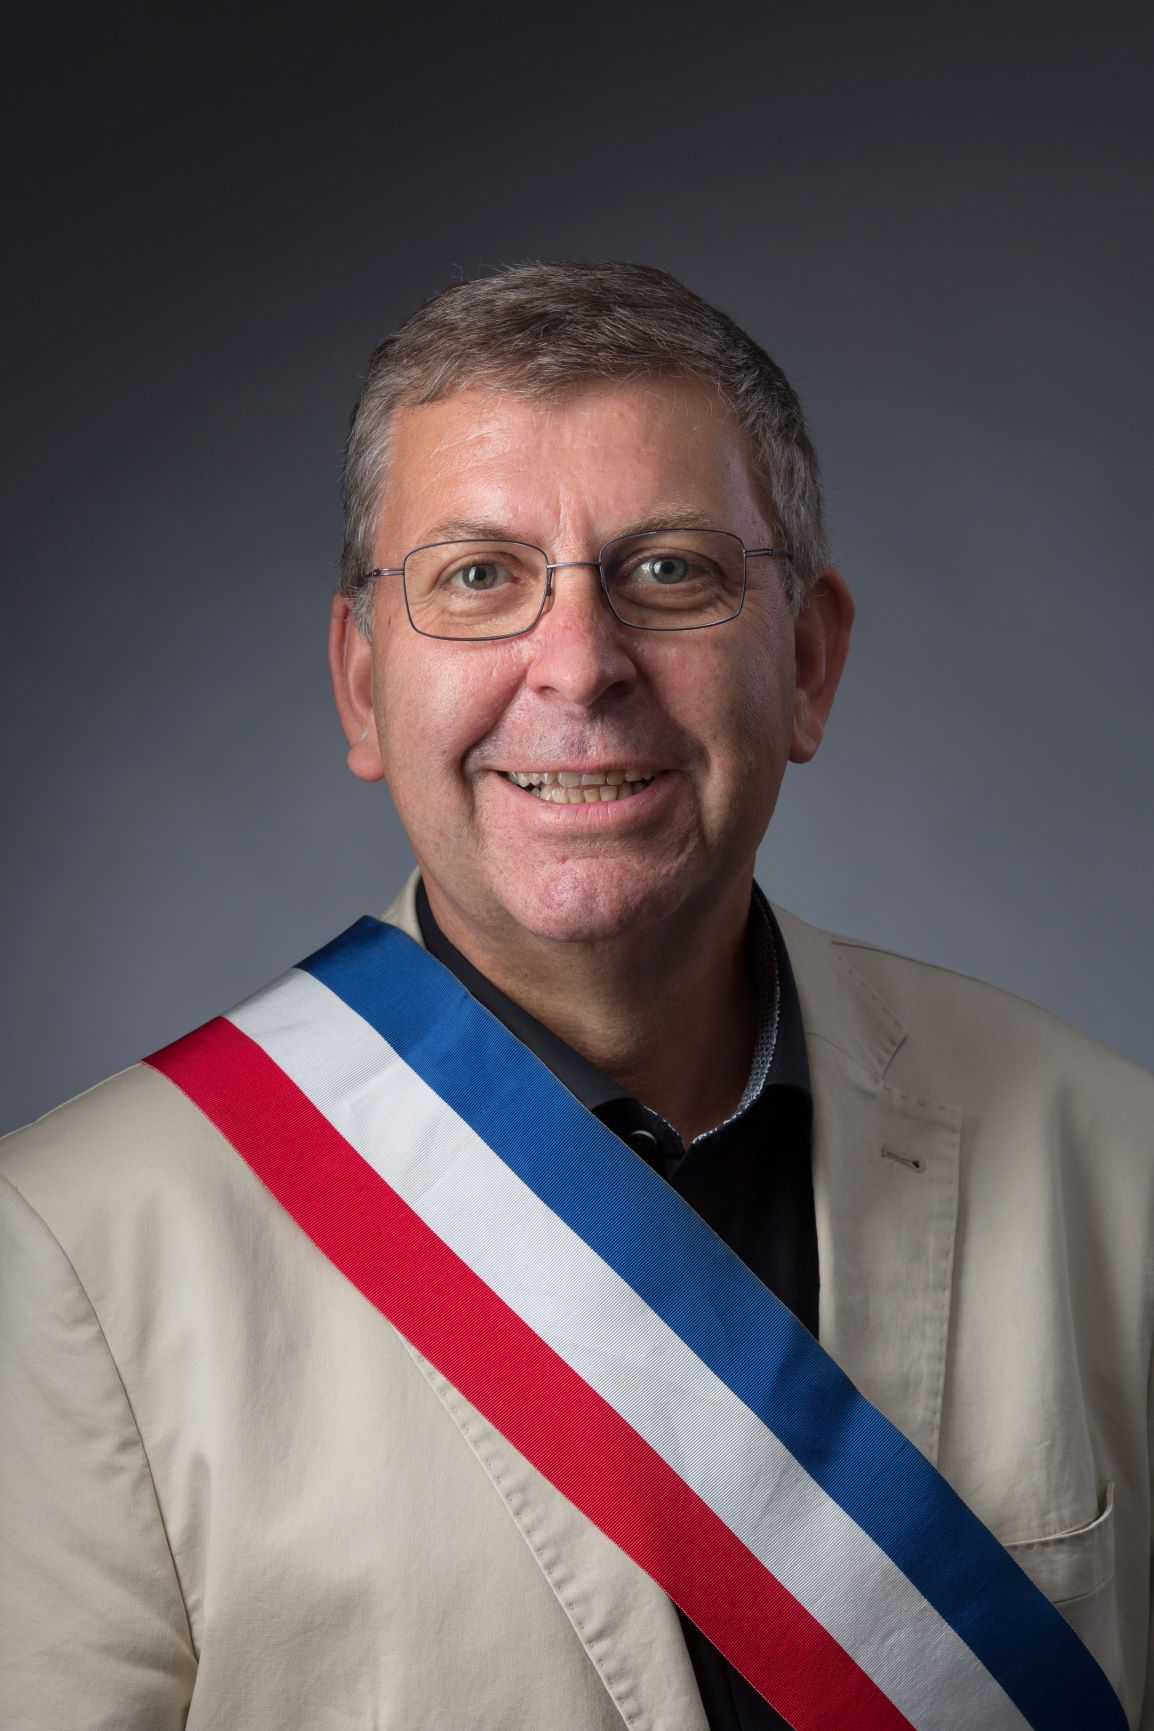 Maire - Philippe Rosaire